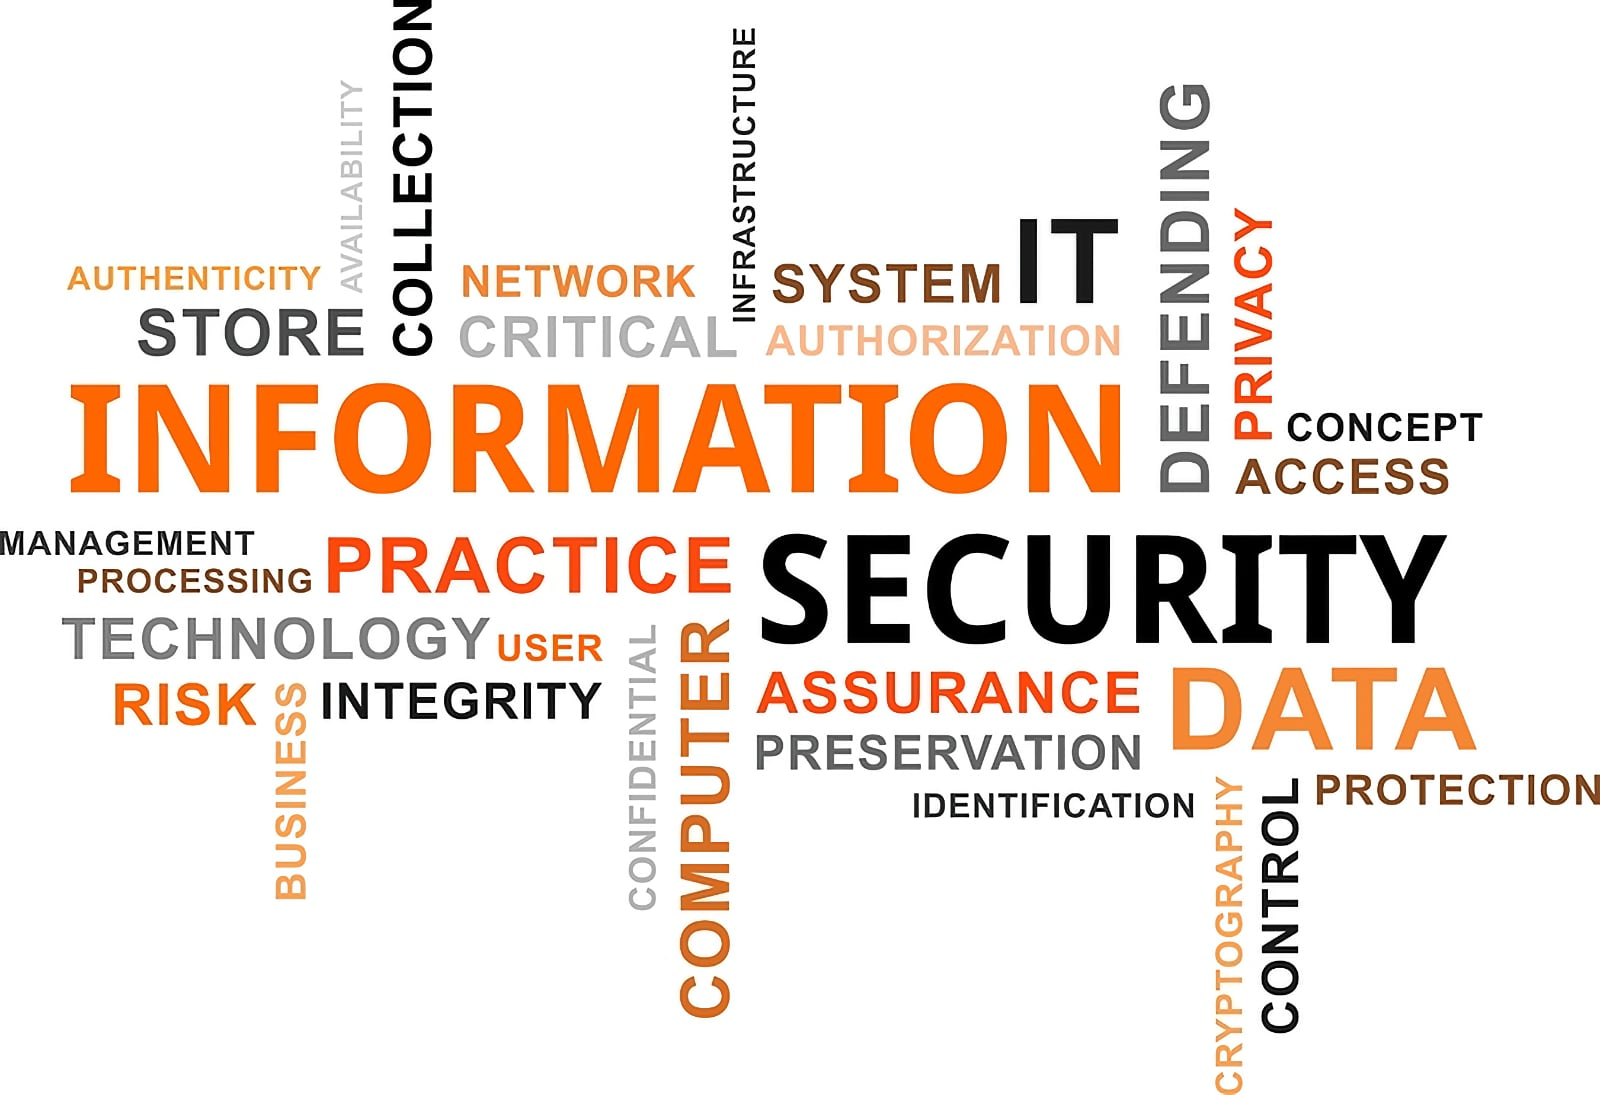 Word cloud image centred on the phrase Information Security, plus additional, related words and phrases